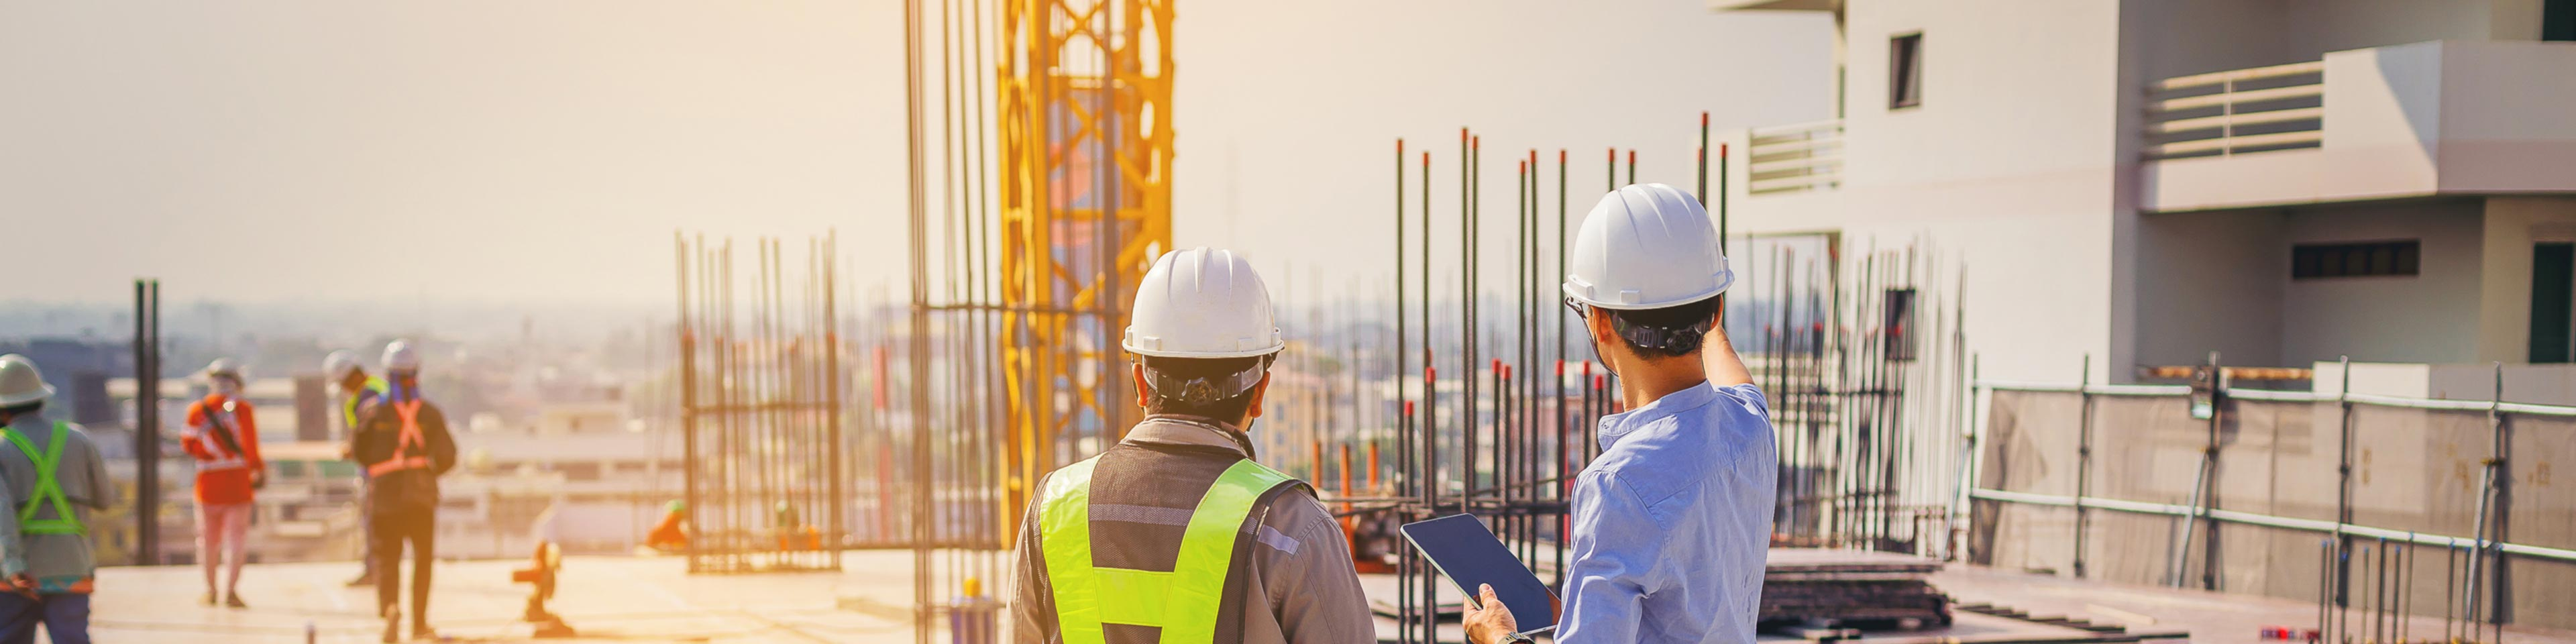 5 business license considerations for construction companies